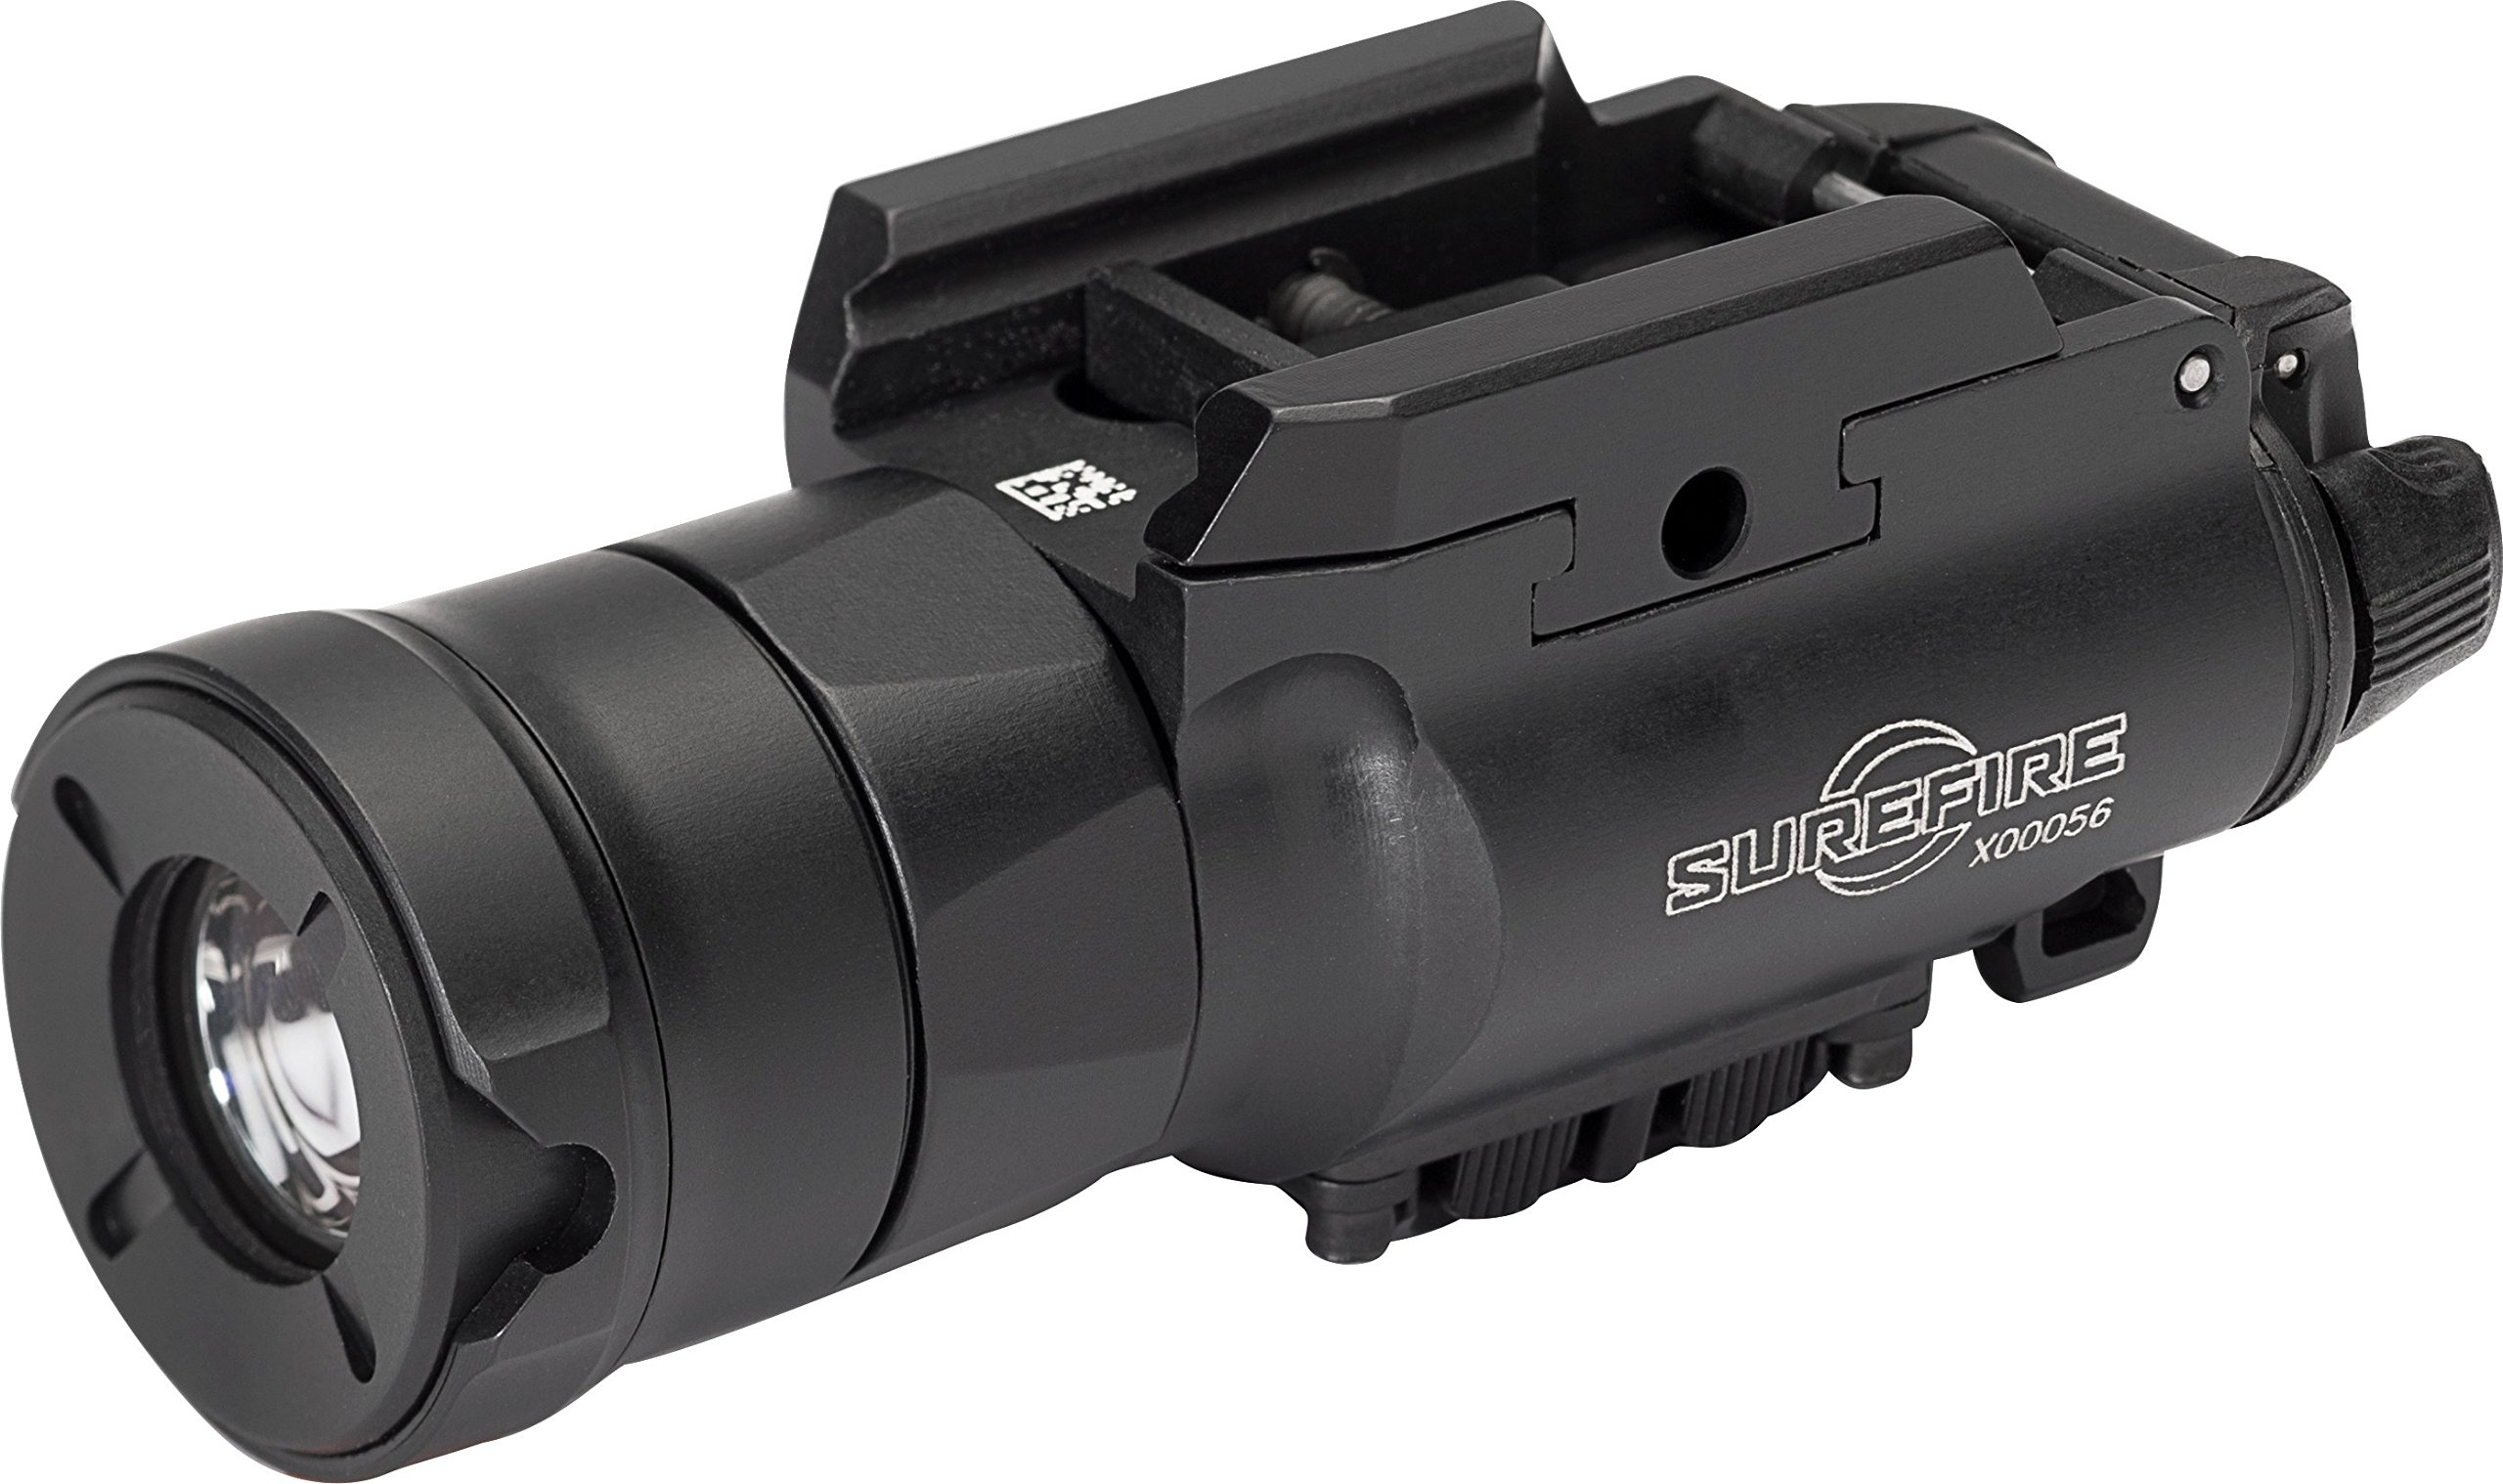 XH35 Weaponlight with MasterFire RDH Interface & MaxVision, 1000 Lumens, Anodized Body